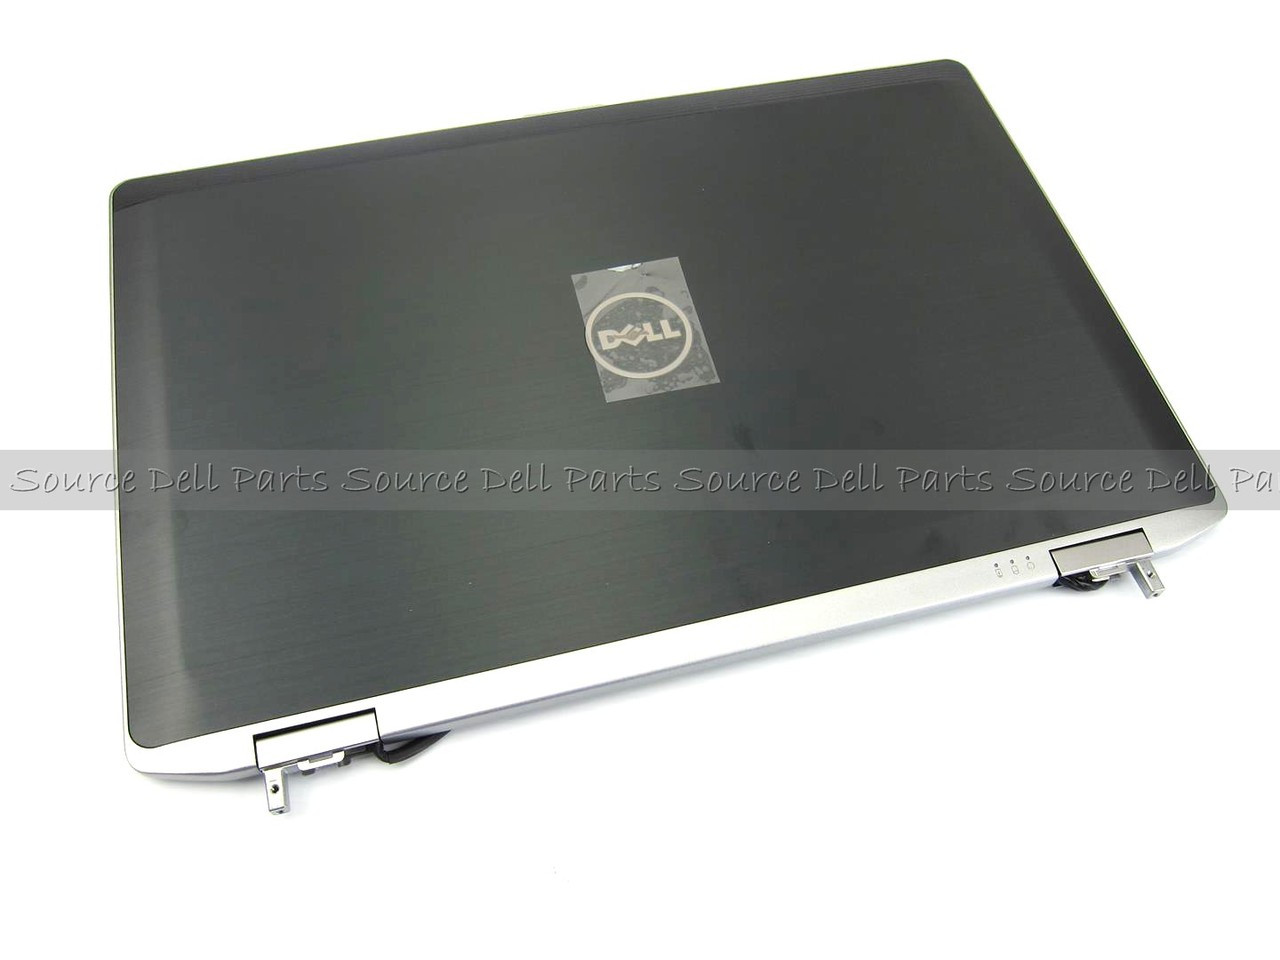 Dell Latitude E6530 LCD Back Cover Lid & Hinges - 5KXP0 (B)